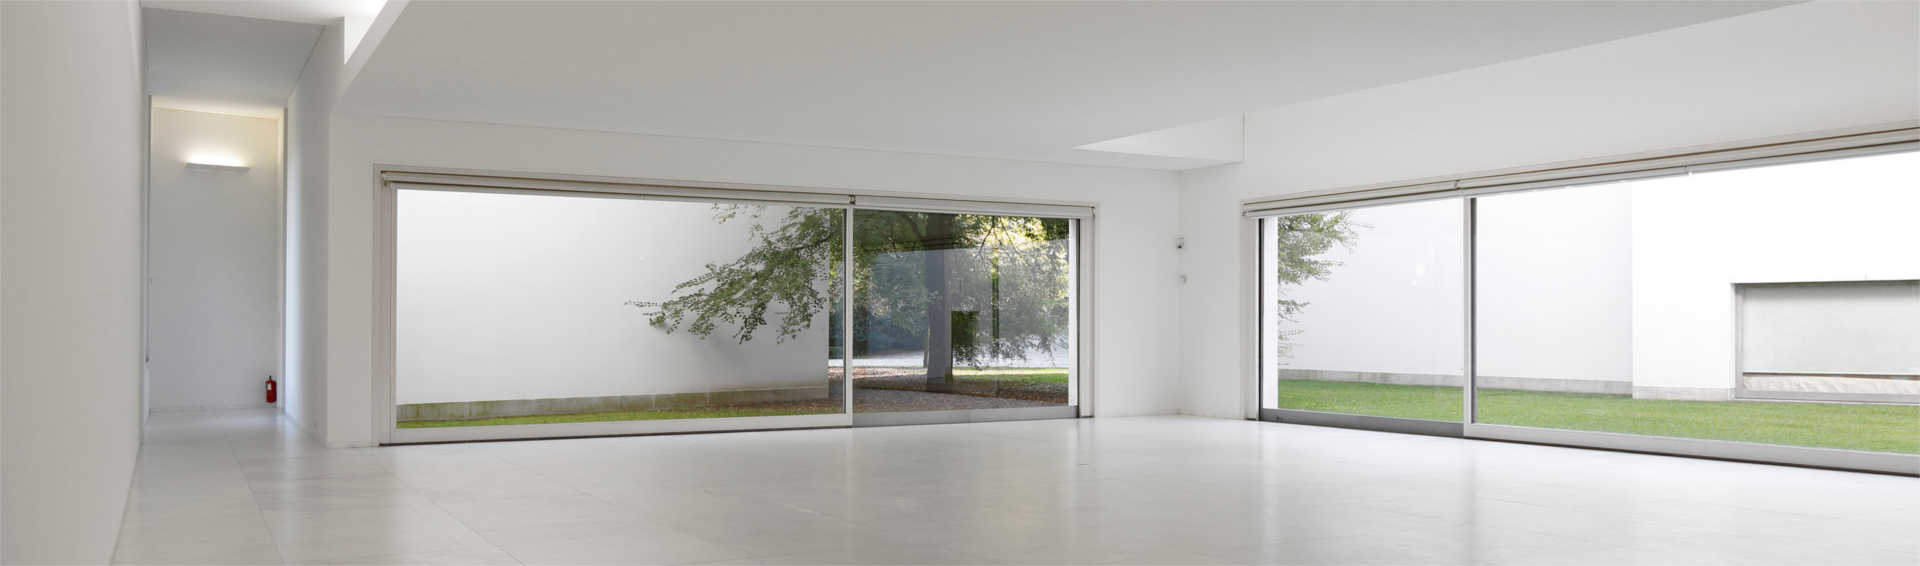 Serralves Foundation - image 1